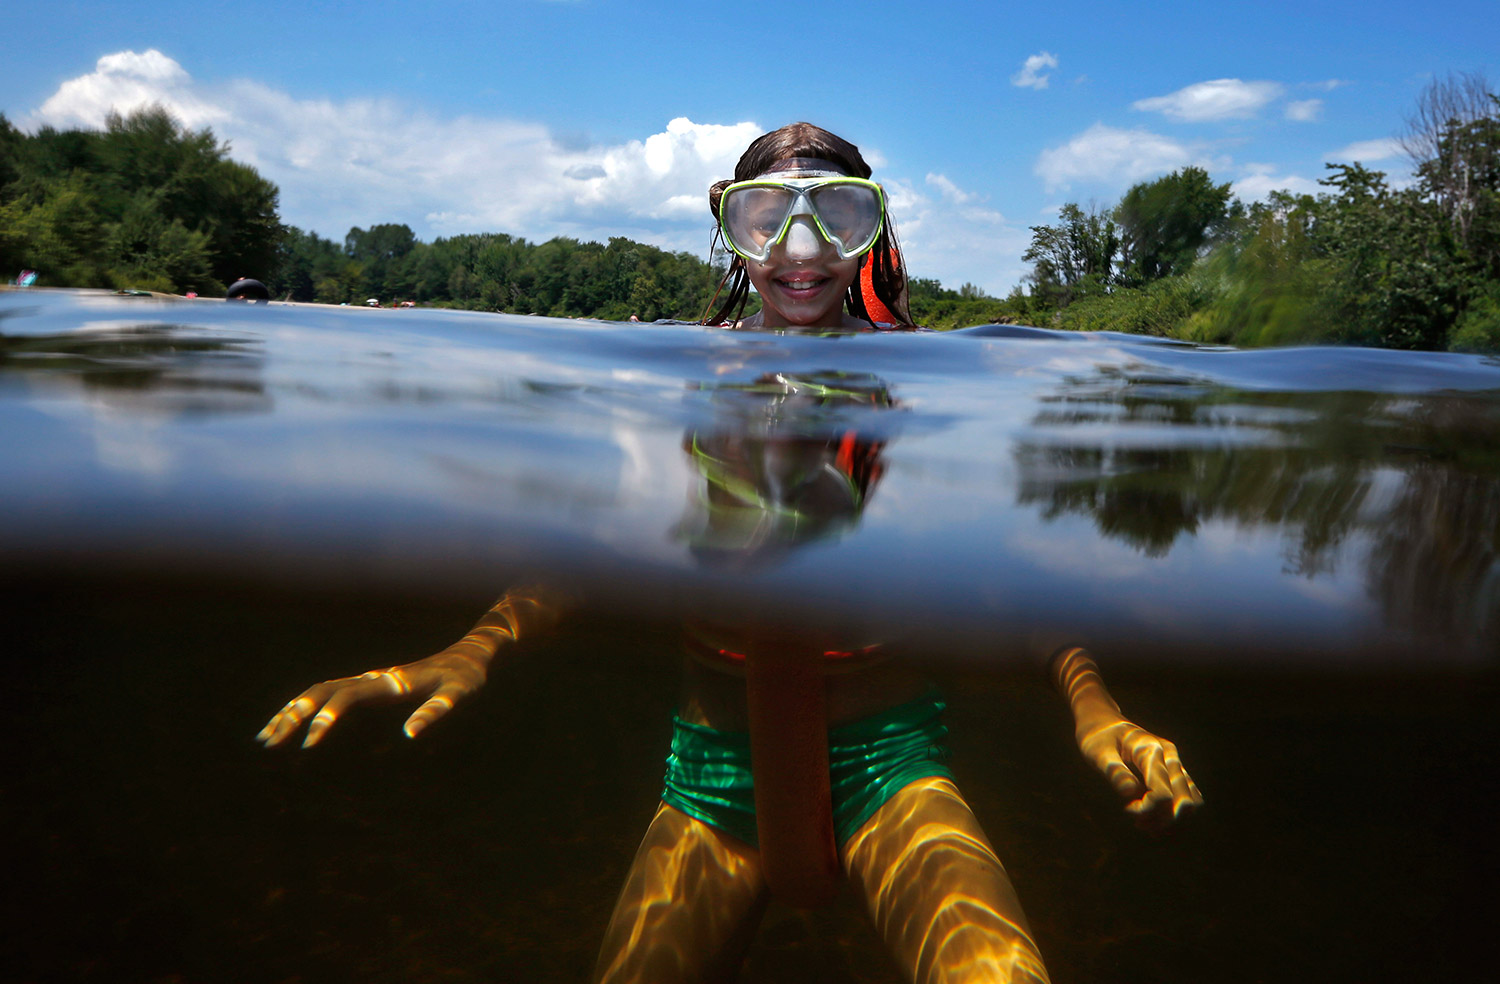 Emily Sword, of Fryeburg, keeps cool while floating in the Saco River on Wednesday in Fryeburg. With the temperature hovering around 90 degrees, swimming holes were popular spots.